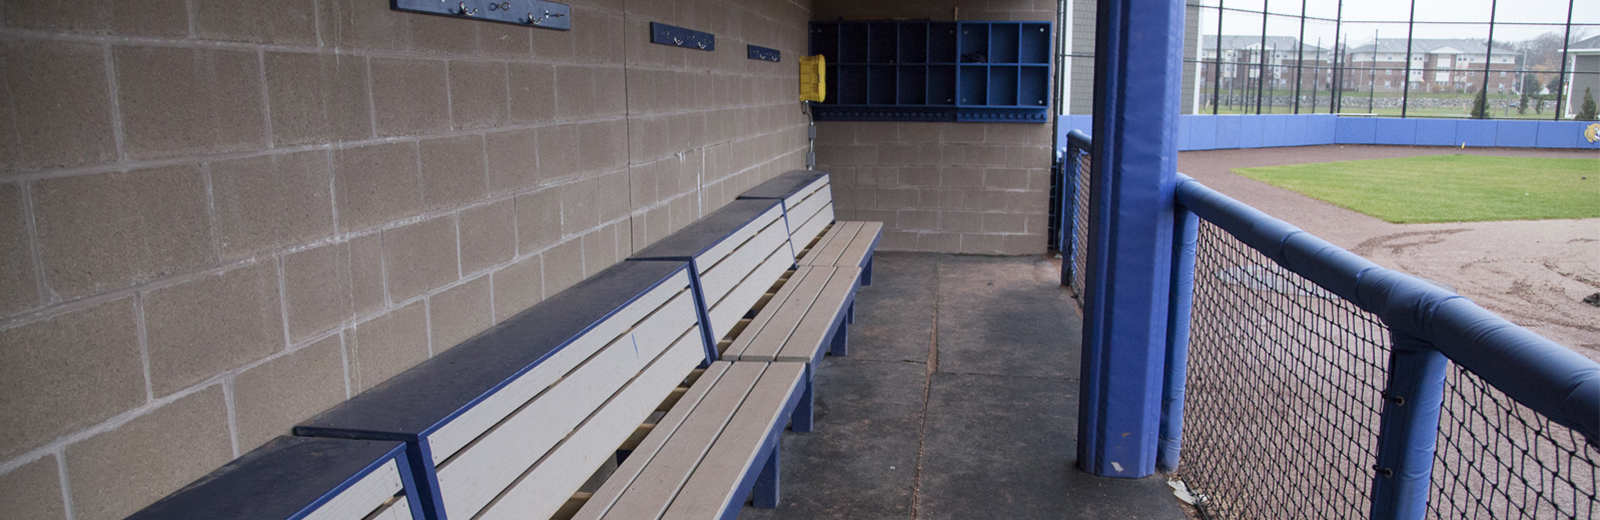 Stupendous Custom Dugouts Baseball Softball On Deck Sports Ocoug Best Dining Table And Chair Ideas Images Ocougorg